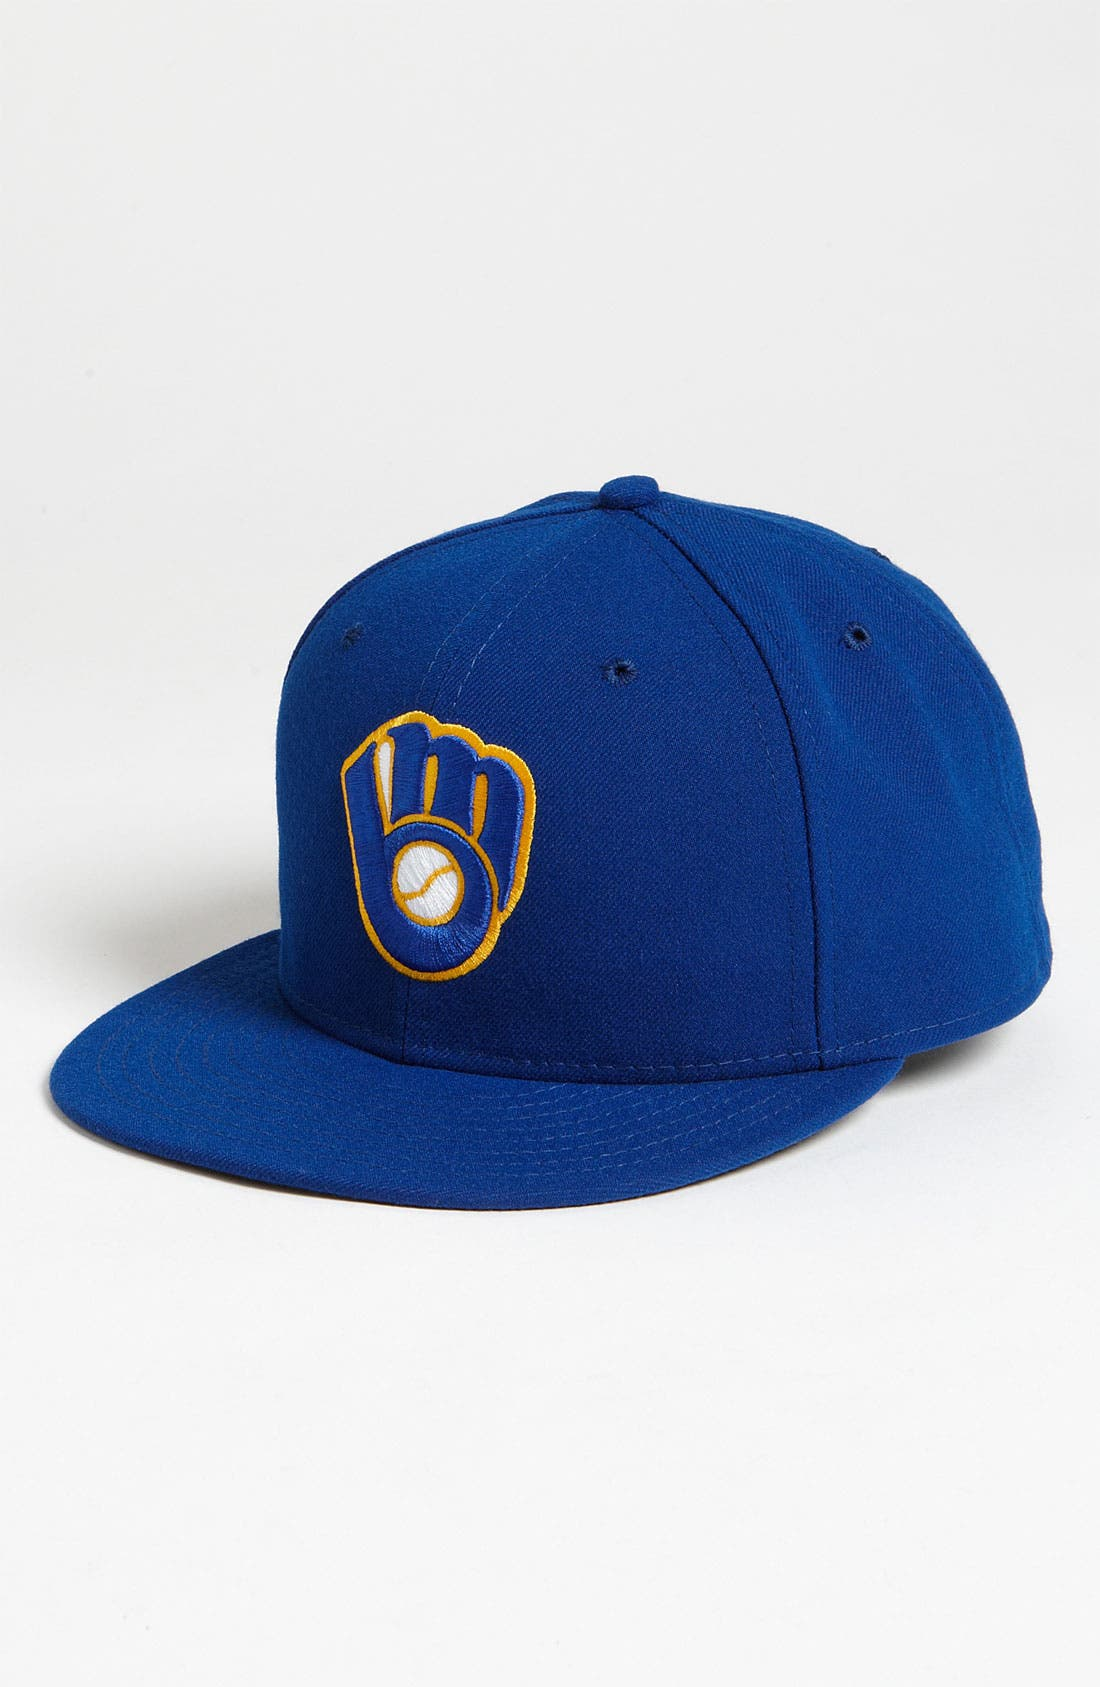 Alternate Image 1 Selected - New Era Cap 'Milwaukee Brewers' Baseball Cap